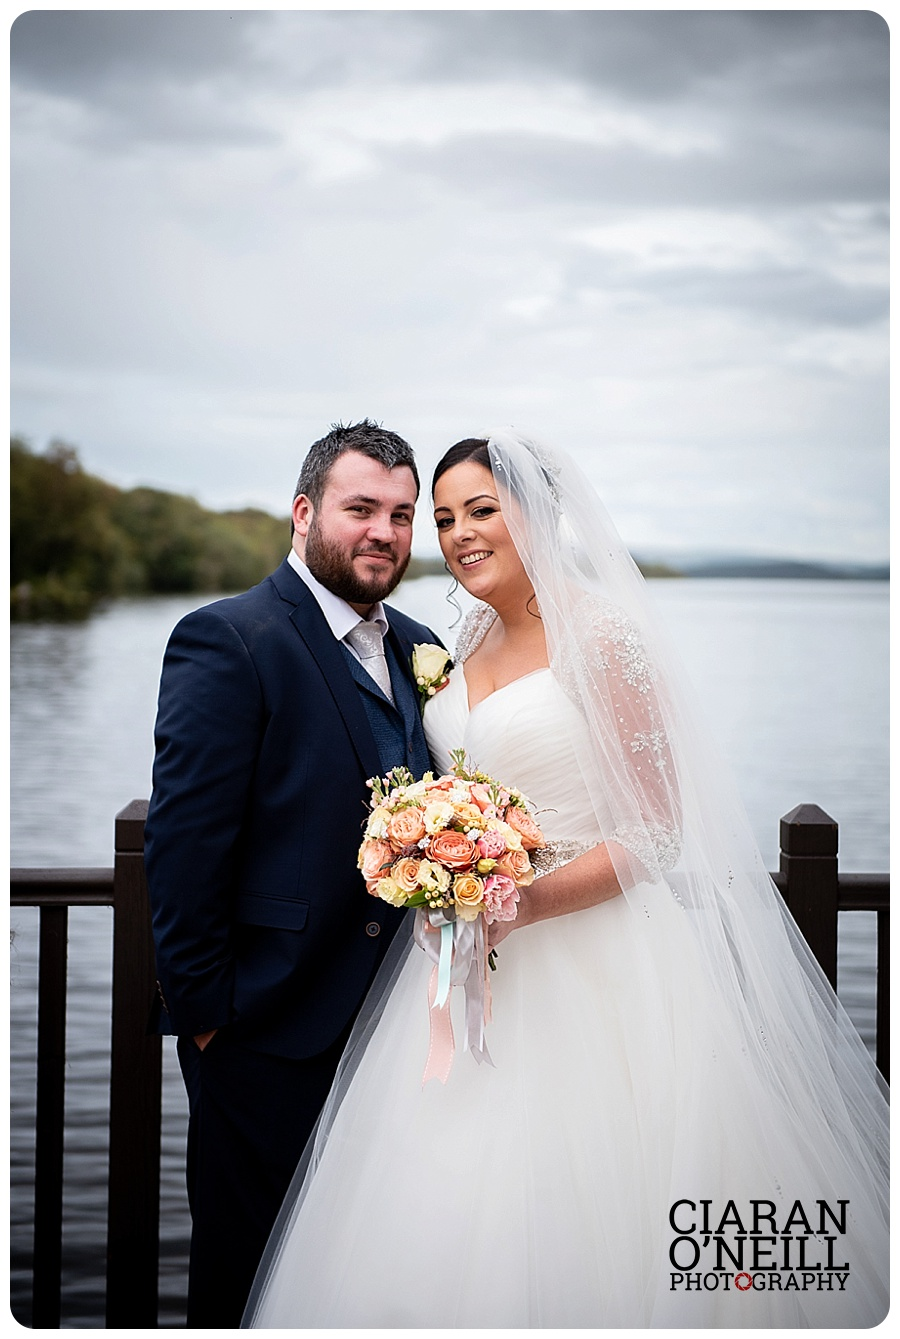 Fiona & Neil's wedding at Lusty Beg Island by Ciaran O'Neill Photography